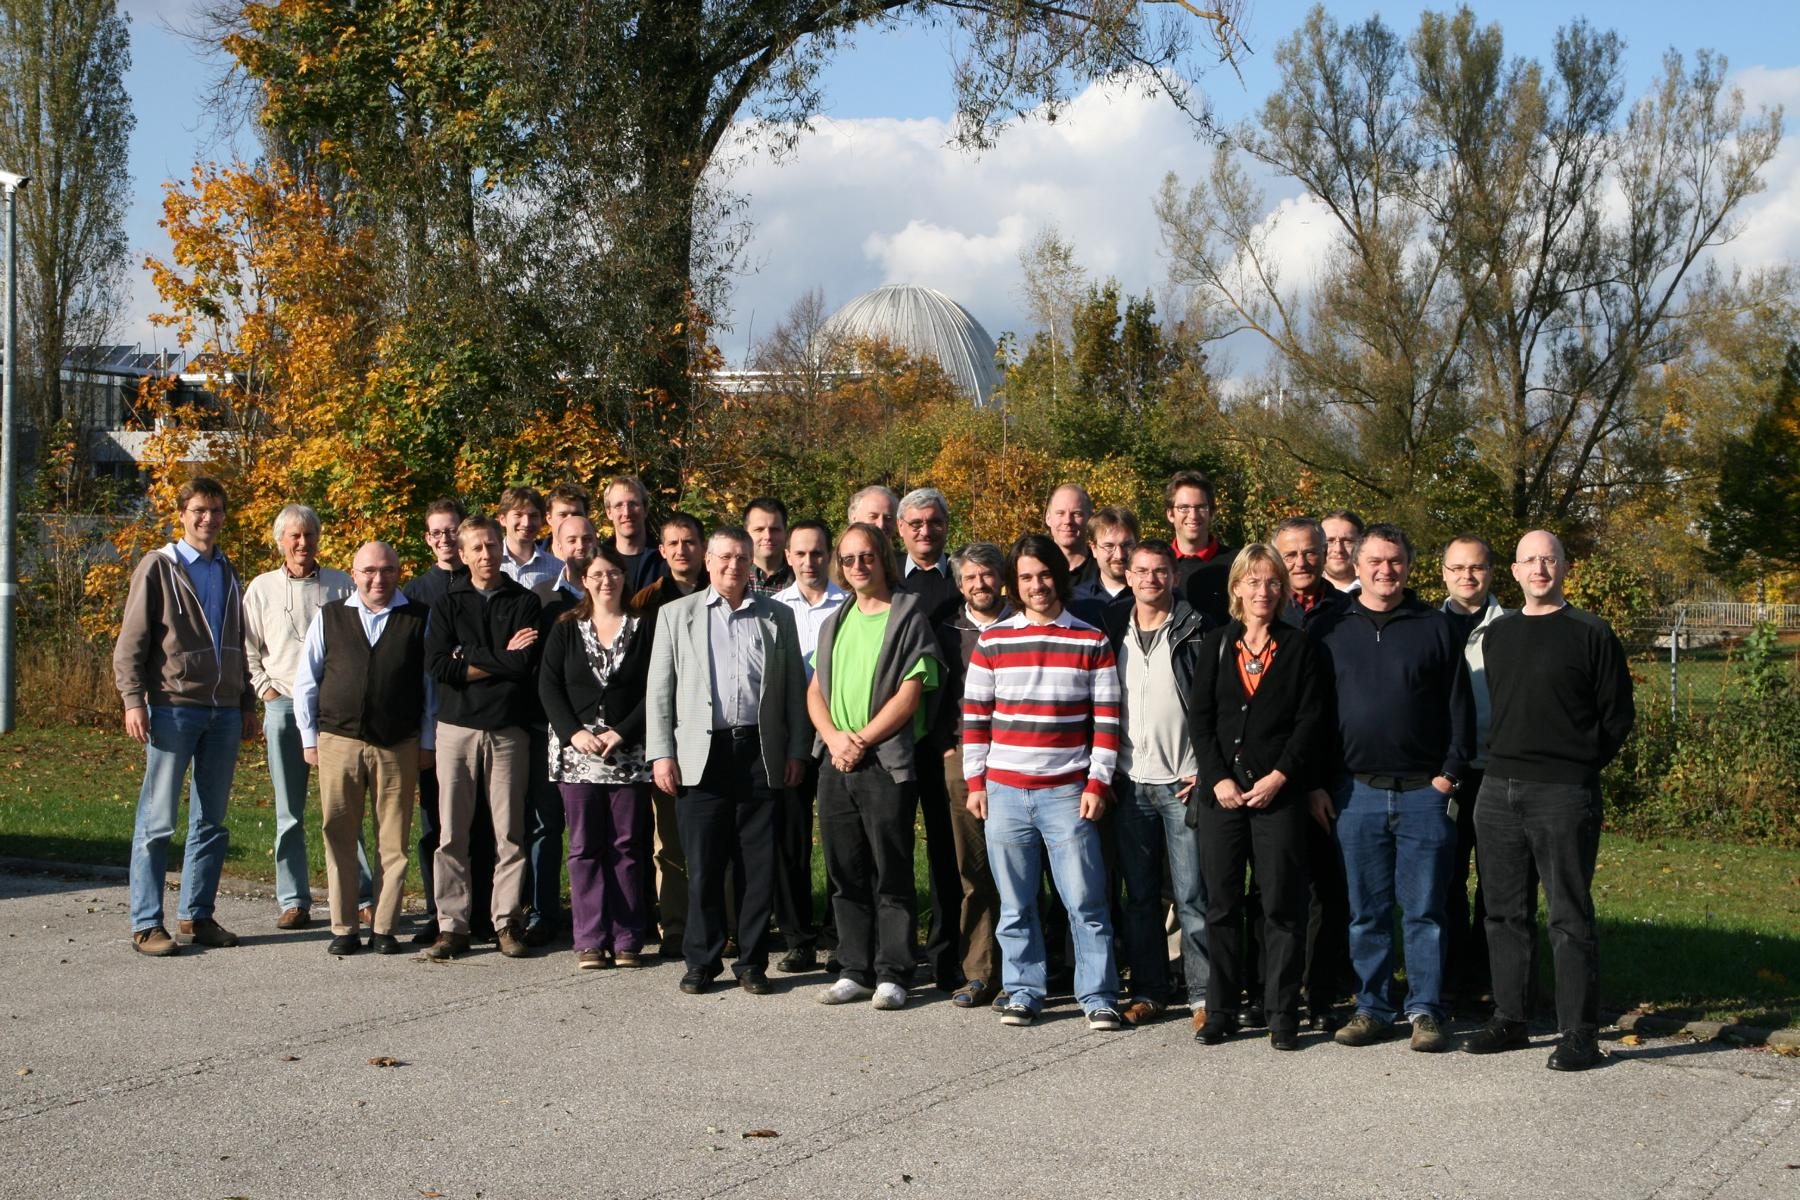 Picture taken at our collaboration meeting in Garching, 17. October 2008